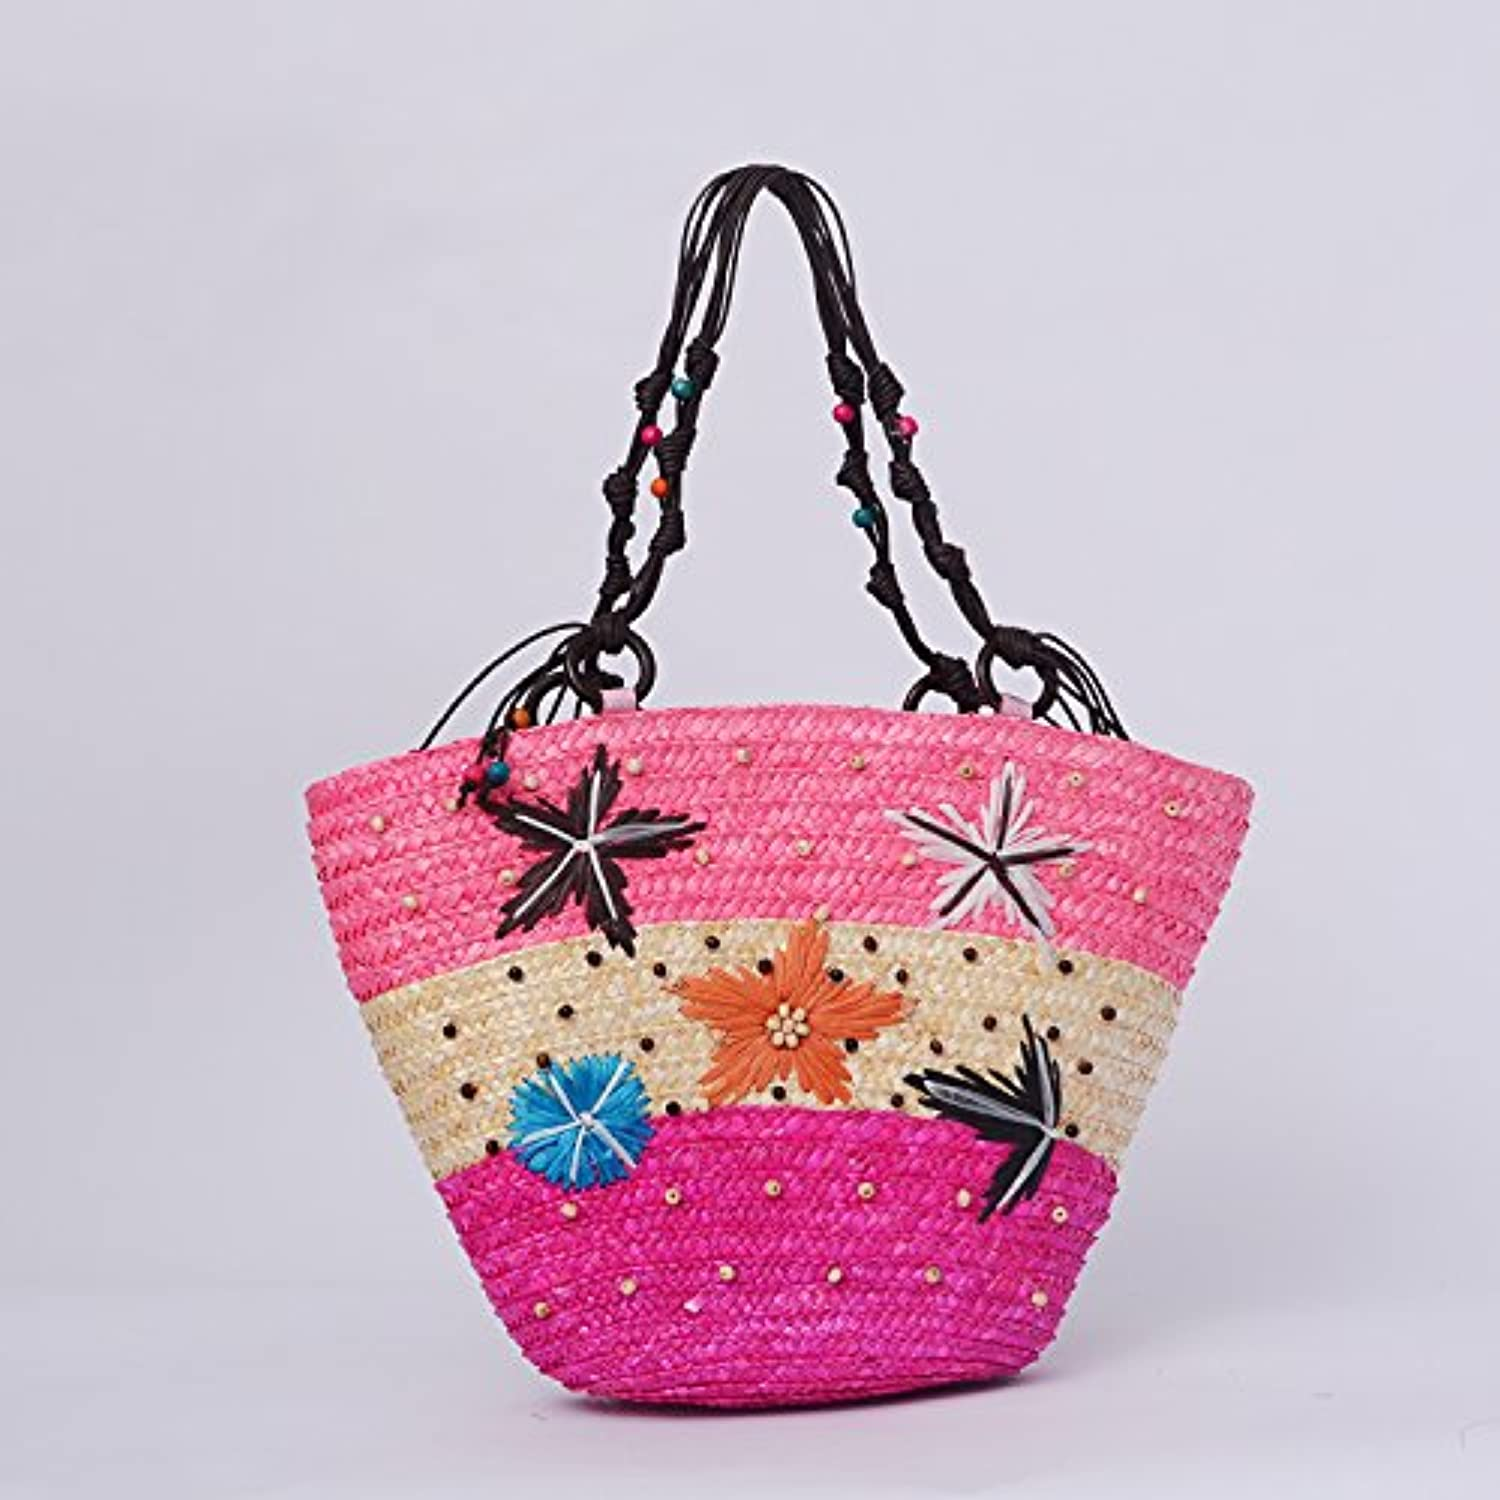 GTVERNHVacation Straw Woven Bag Bohemia Beach Bag Handmade Woven Straw Grass Single Shoulder Women's Bag.